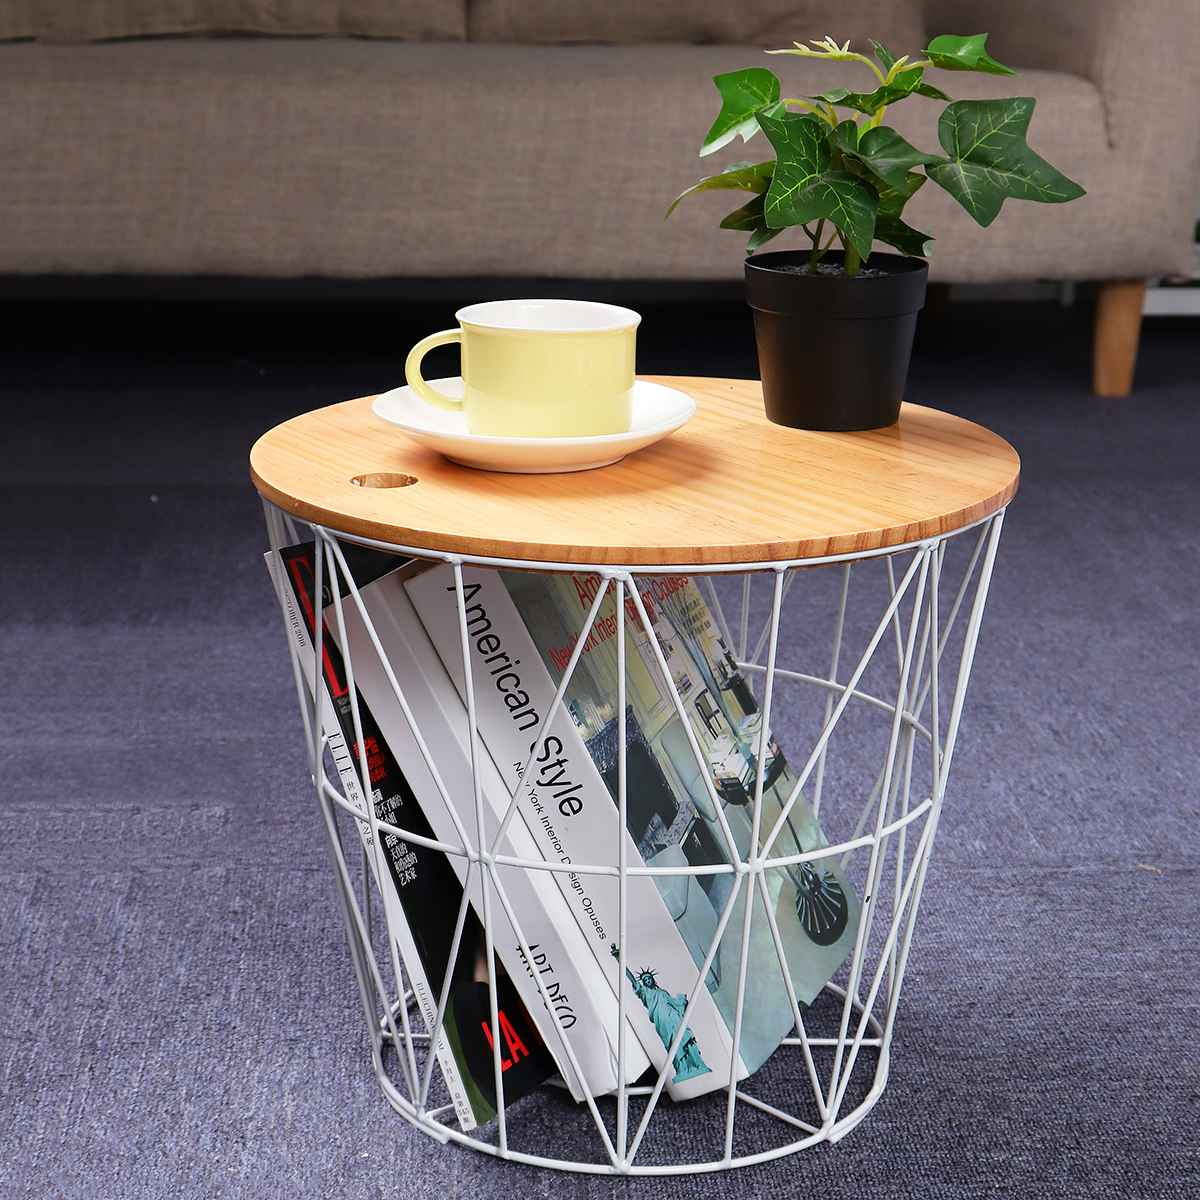 35x30cm White Metal Wire Basket Wooden Top Side Table